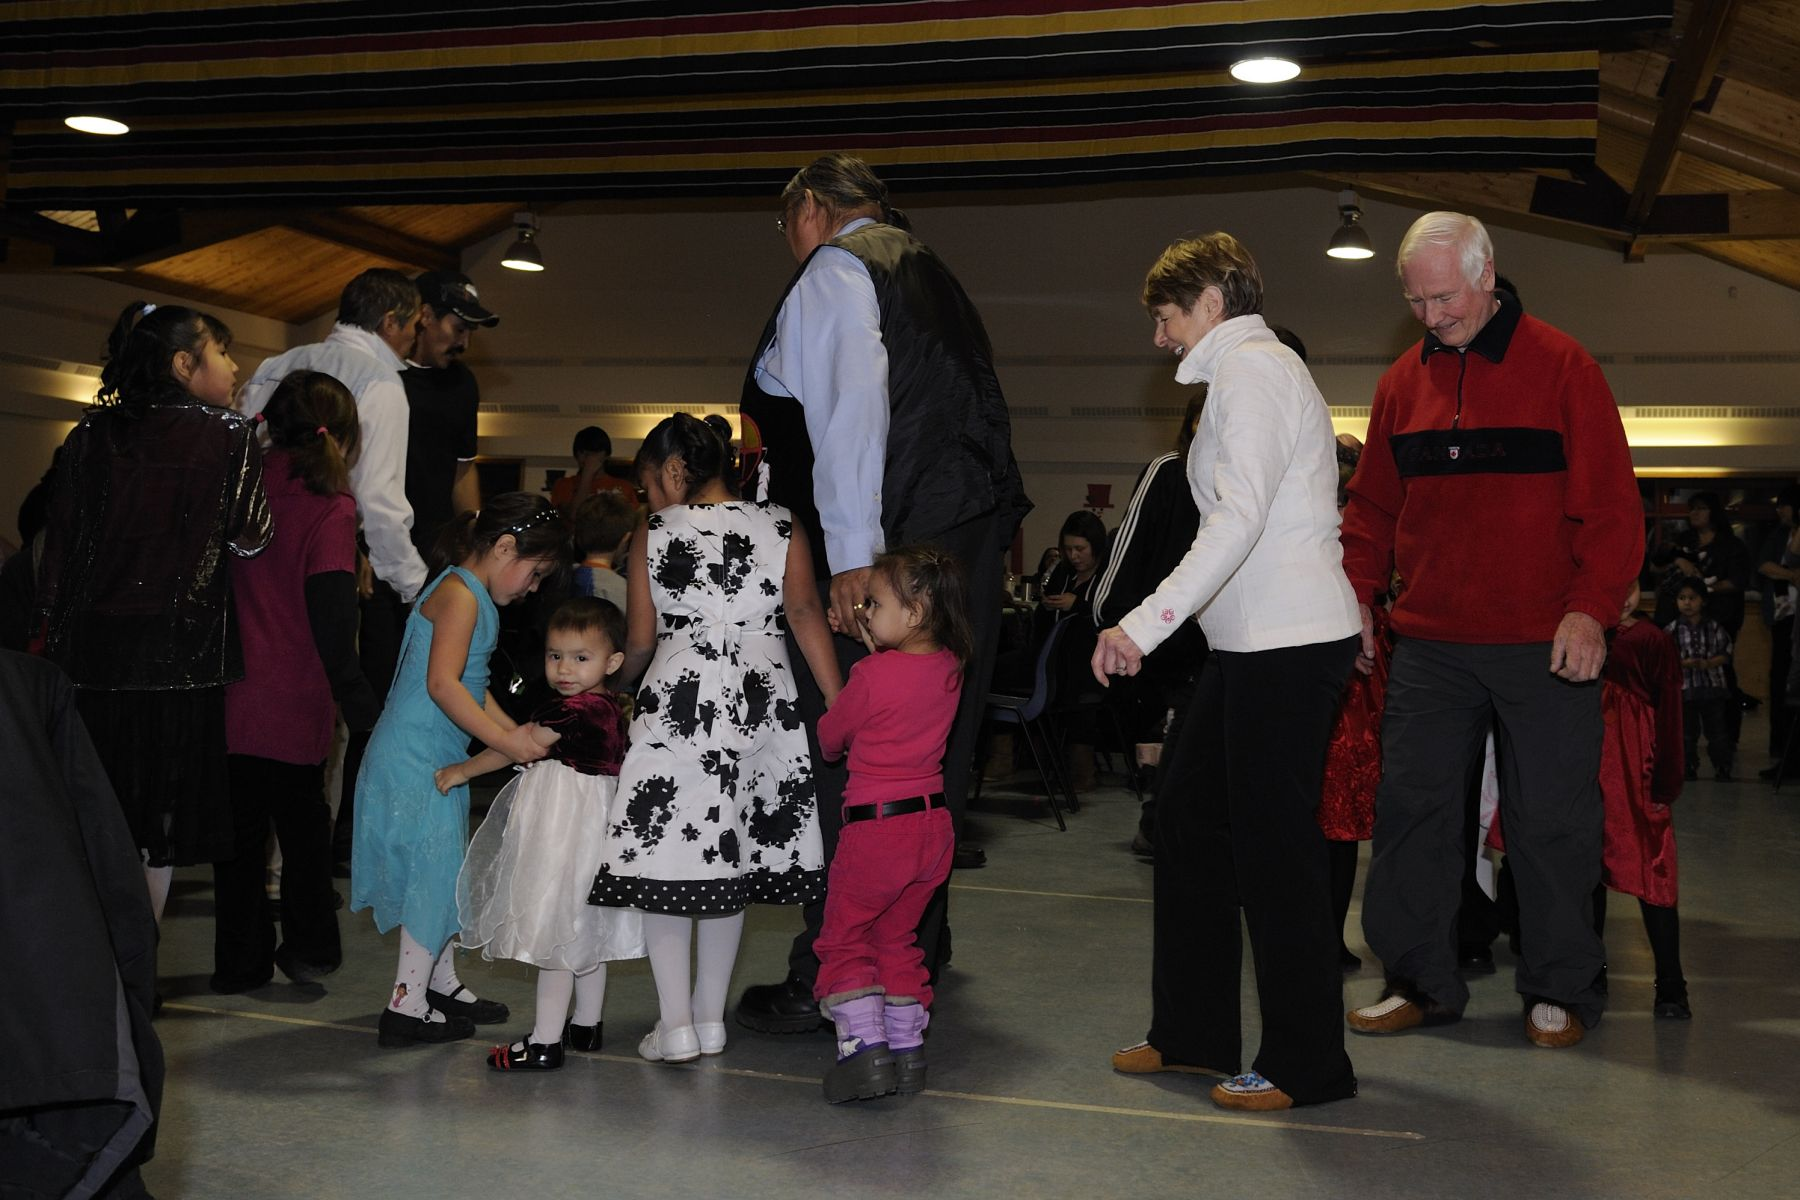 The Governor General and Mrs. Sharon Johnston joined the community members and danced to the sound of drums.